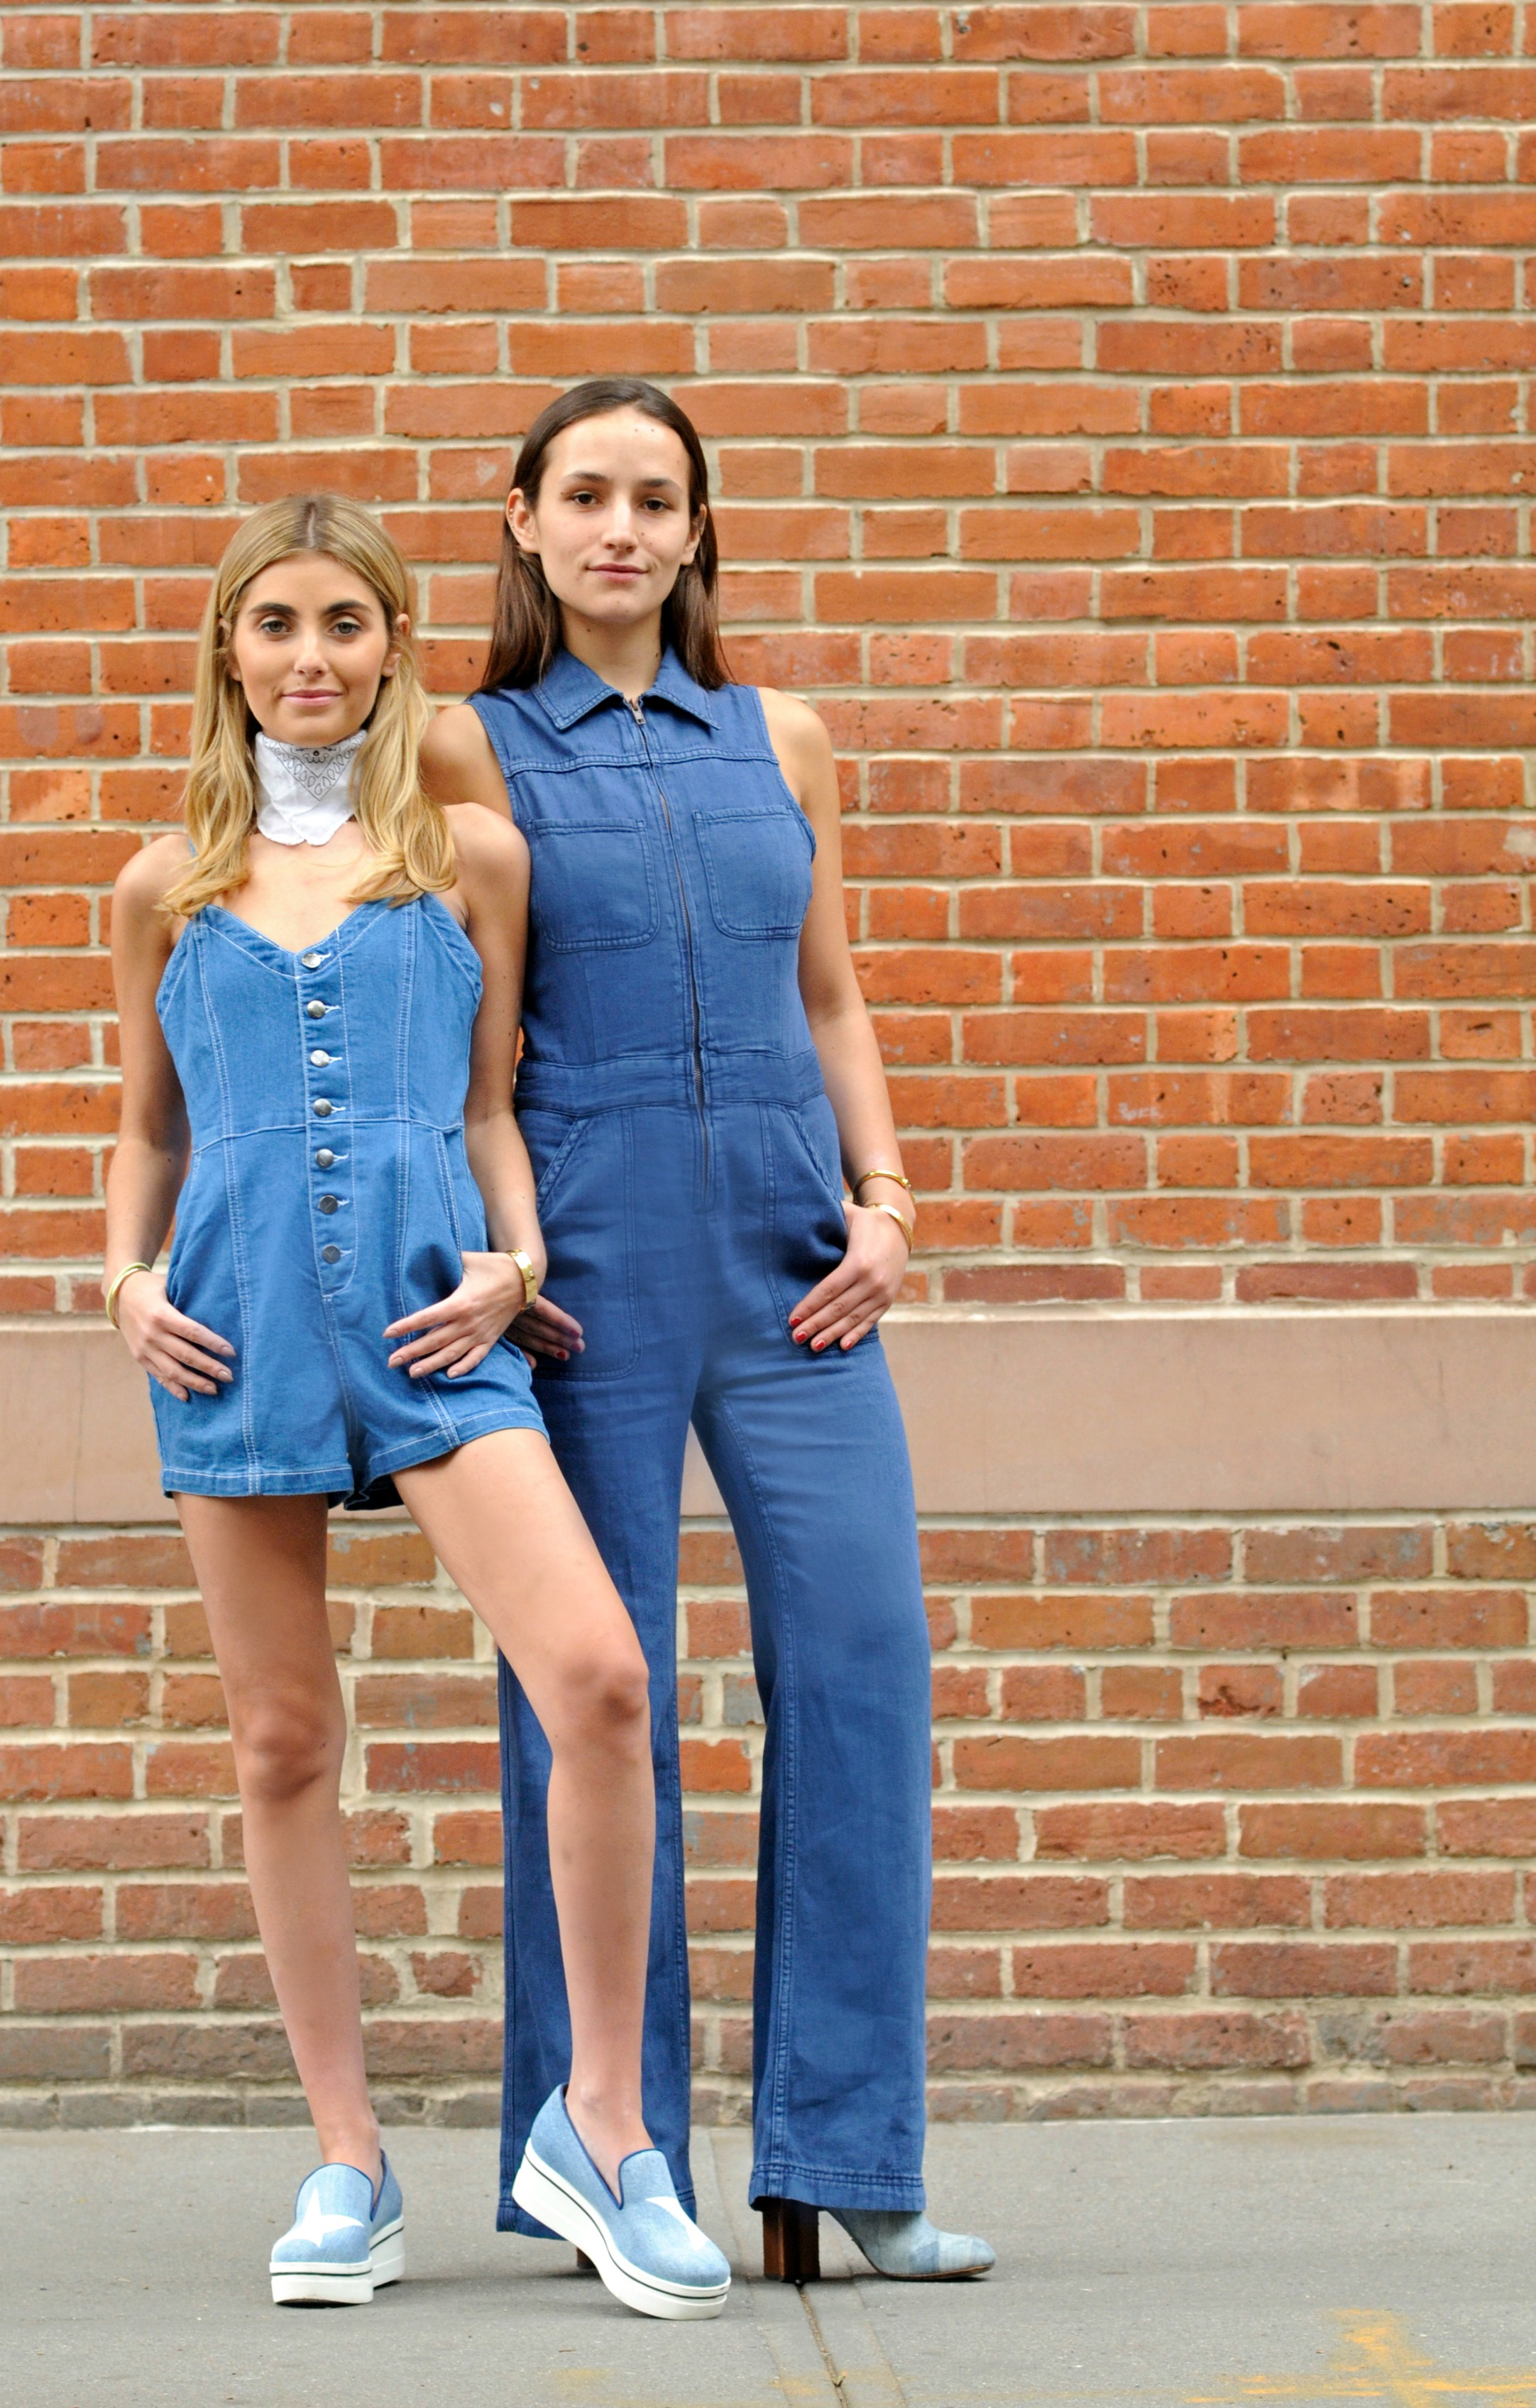 NYC YIN 2MY YANG BICKLEY SISTERS STREET STYLE